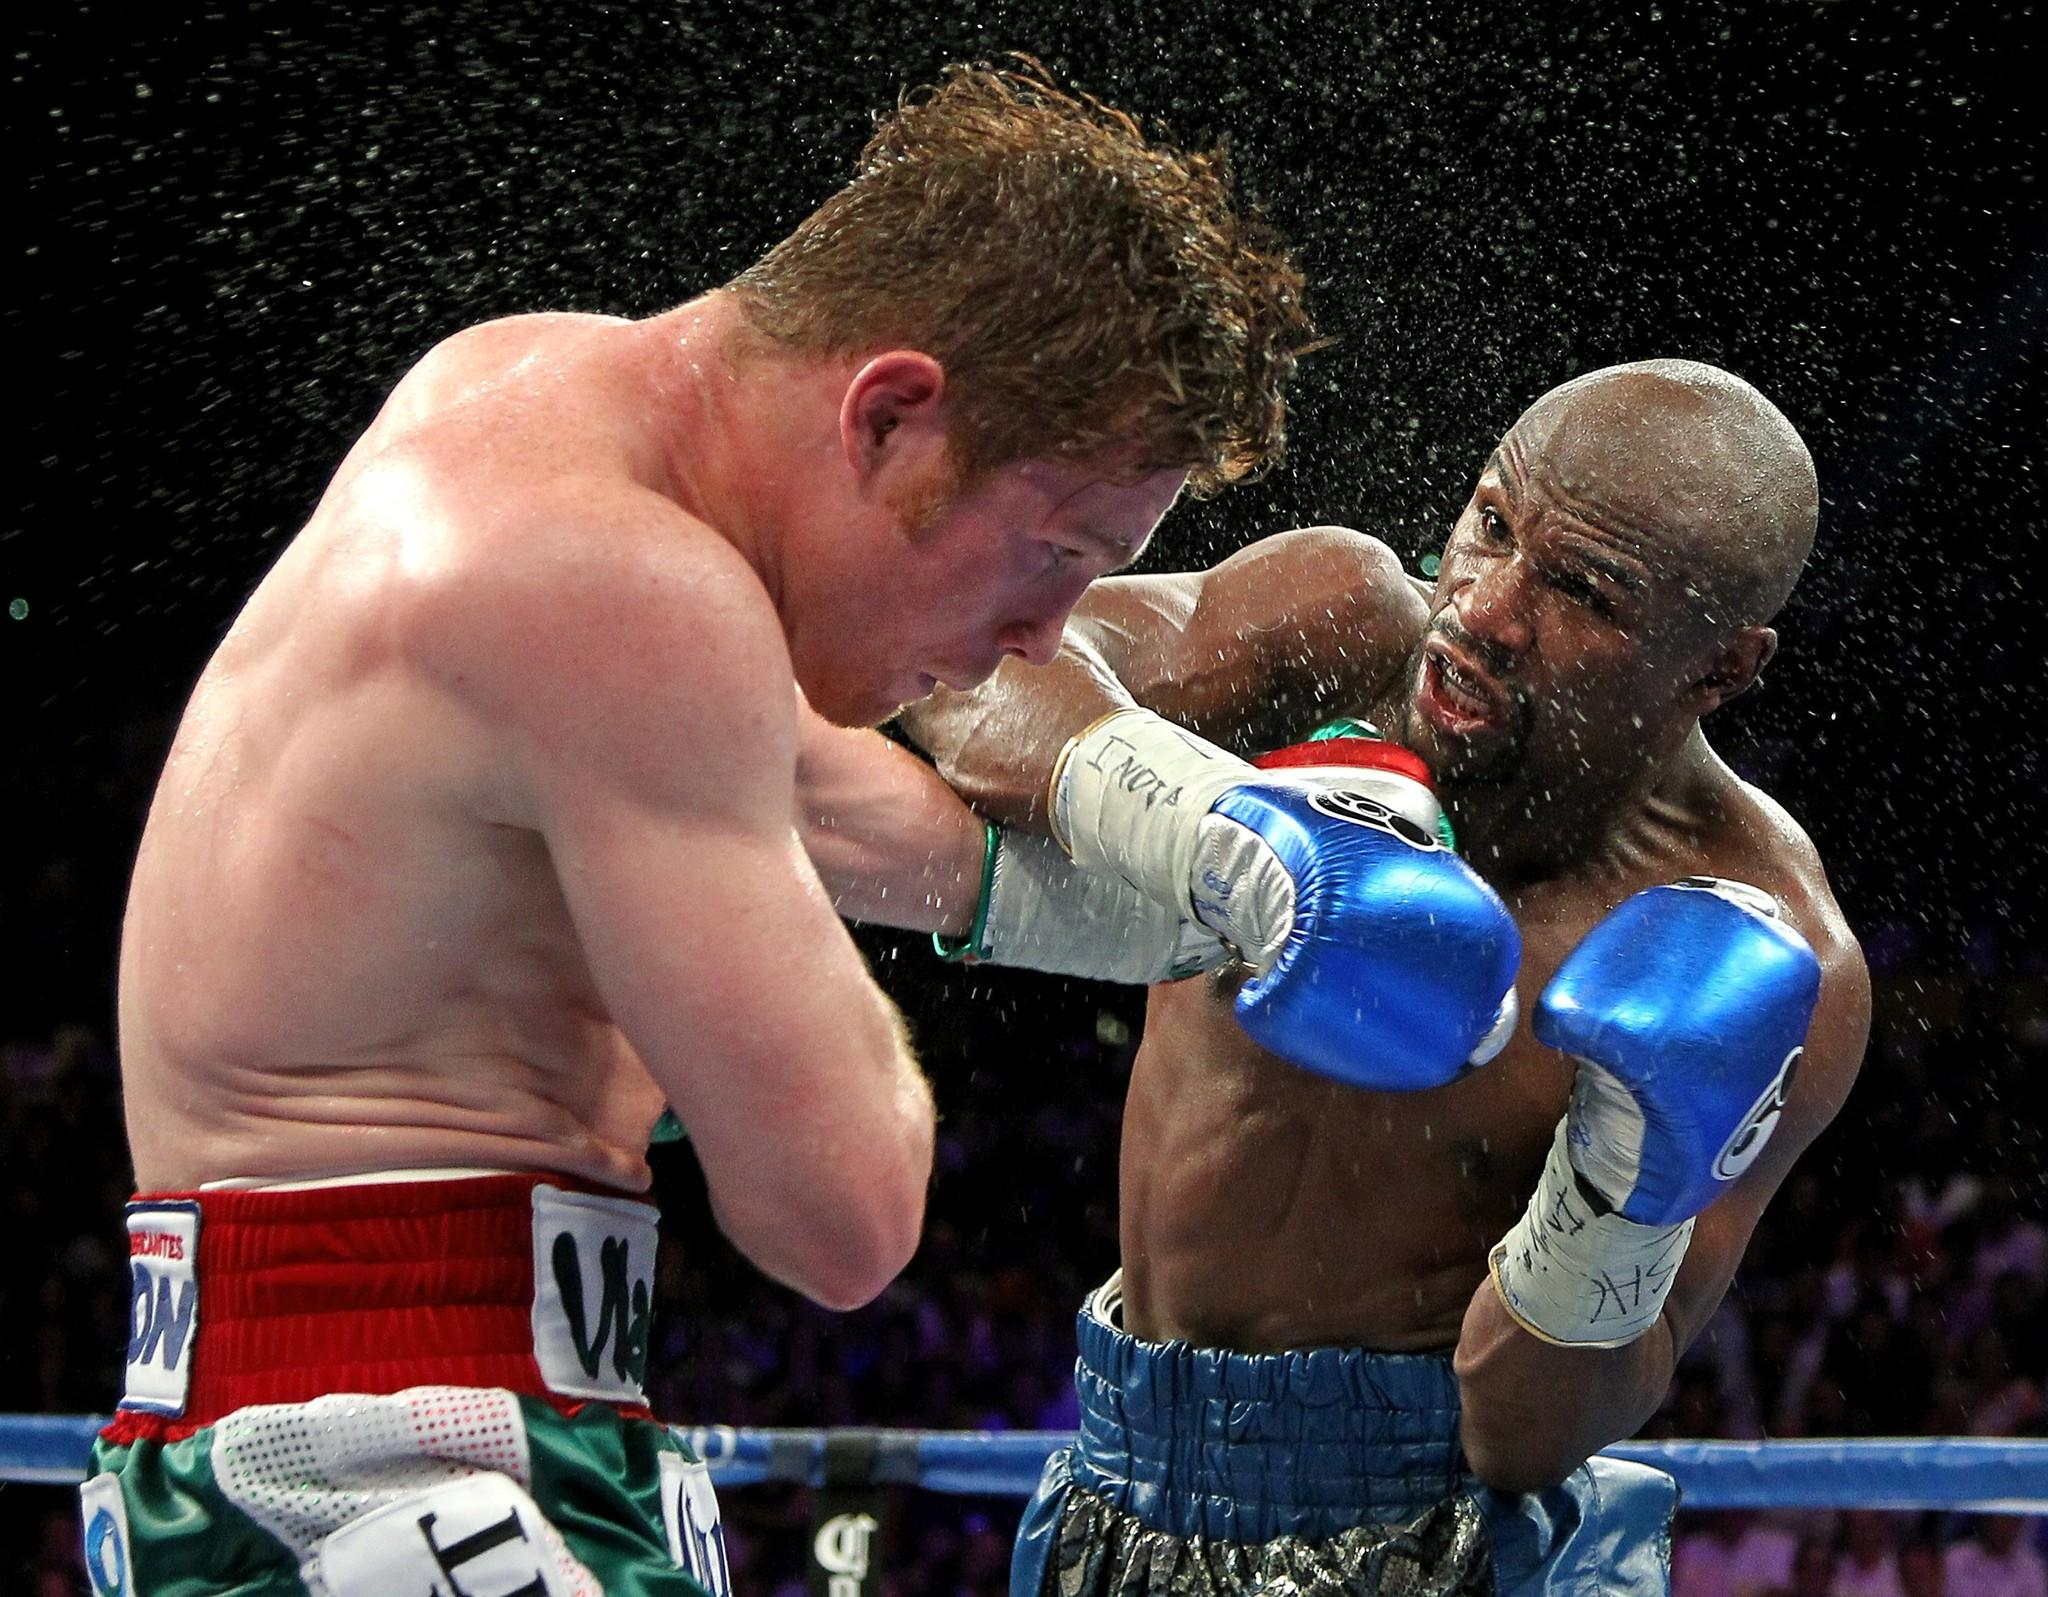 Boxers Floyd Mayweather Jr. of US (R) throws a left at Canelo Alvarez, Mexico, (L) during their WBC/WBA 154-pound title fight at the MGM Grand Garden Arena, September 14, 2013 in Las Vegas, Nevada. Mayweather won a majority decision. AFP PHOTO / John GURZINSKIJOHN GURZINSKI/AFP/Getty Images ORG XMIT: